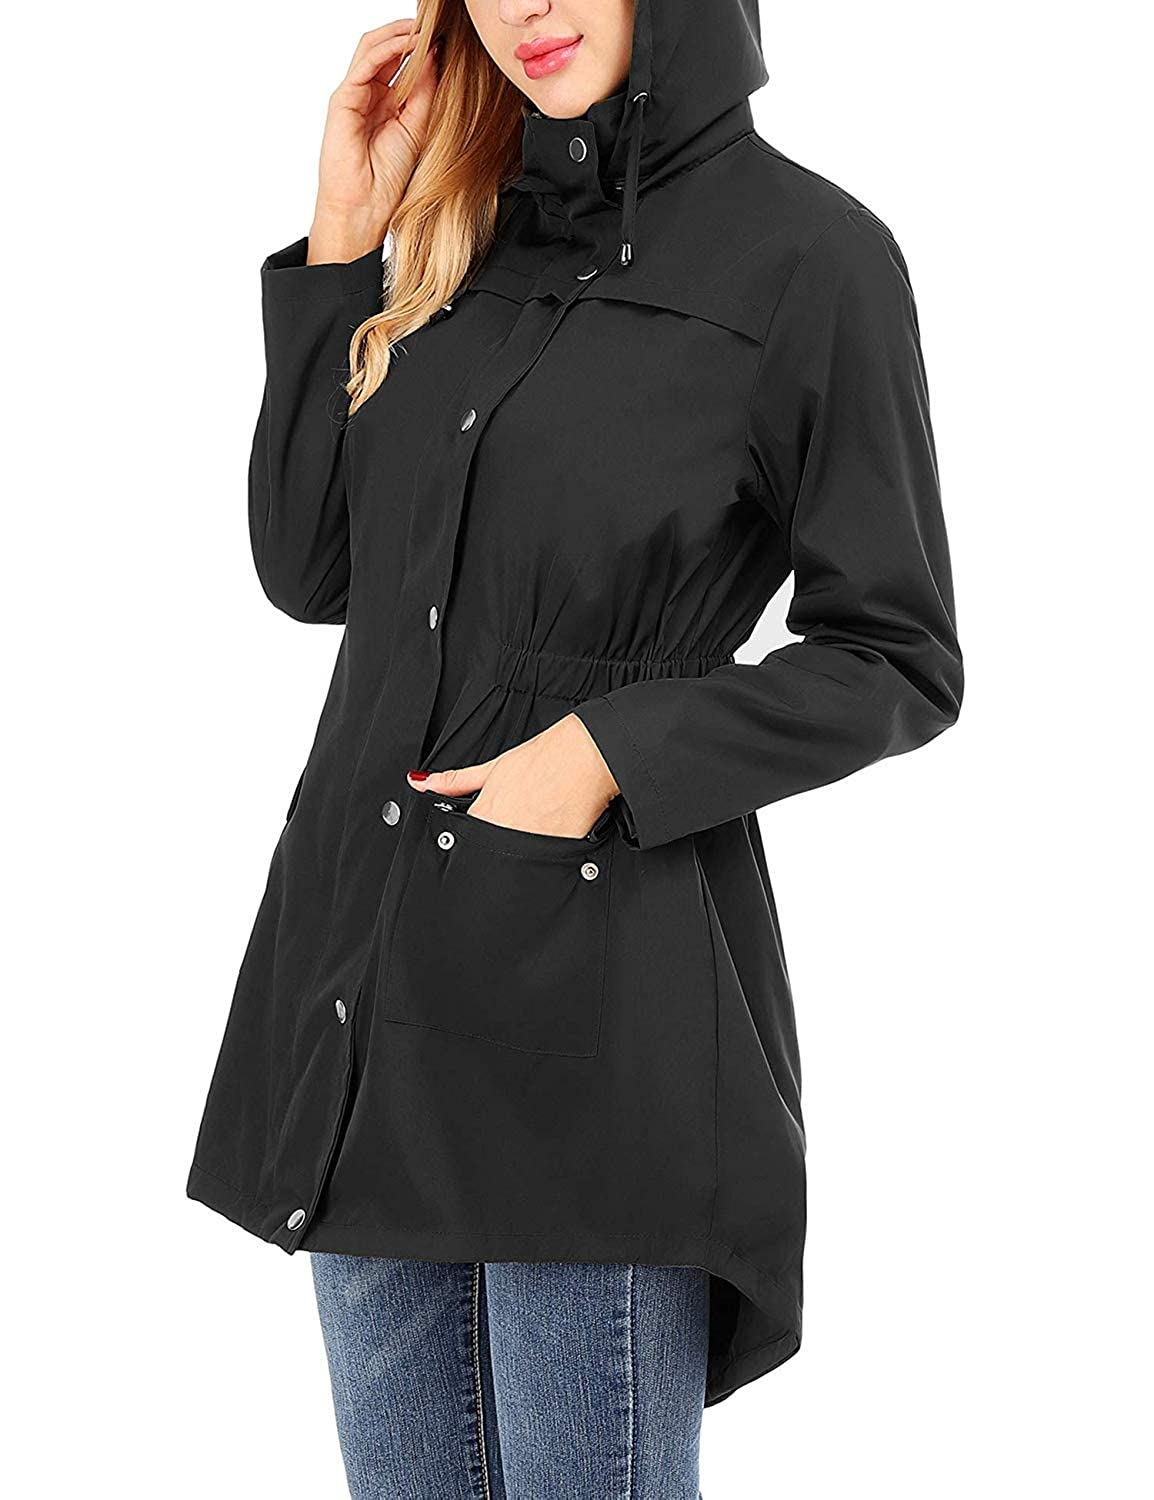 UUANG Rain Jacket Women Waterproof with Hood Outdoor Raincoat Active Lightweight Jacket S-2XL